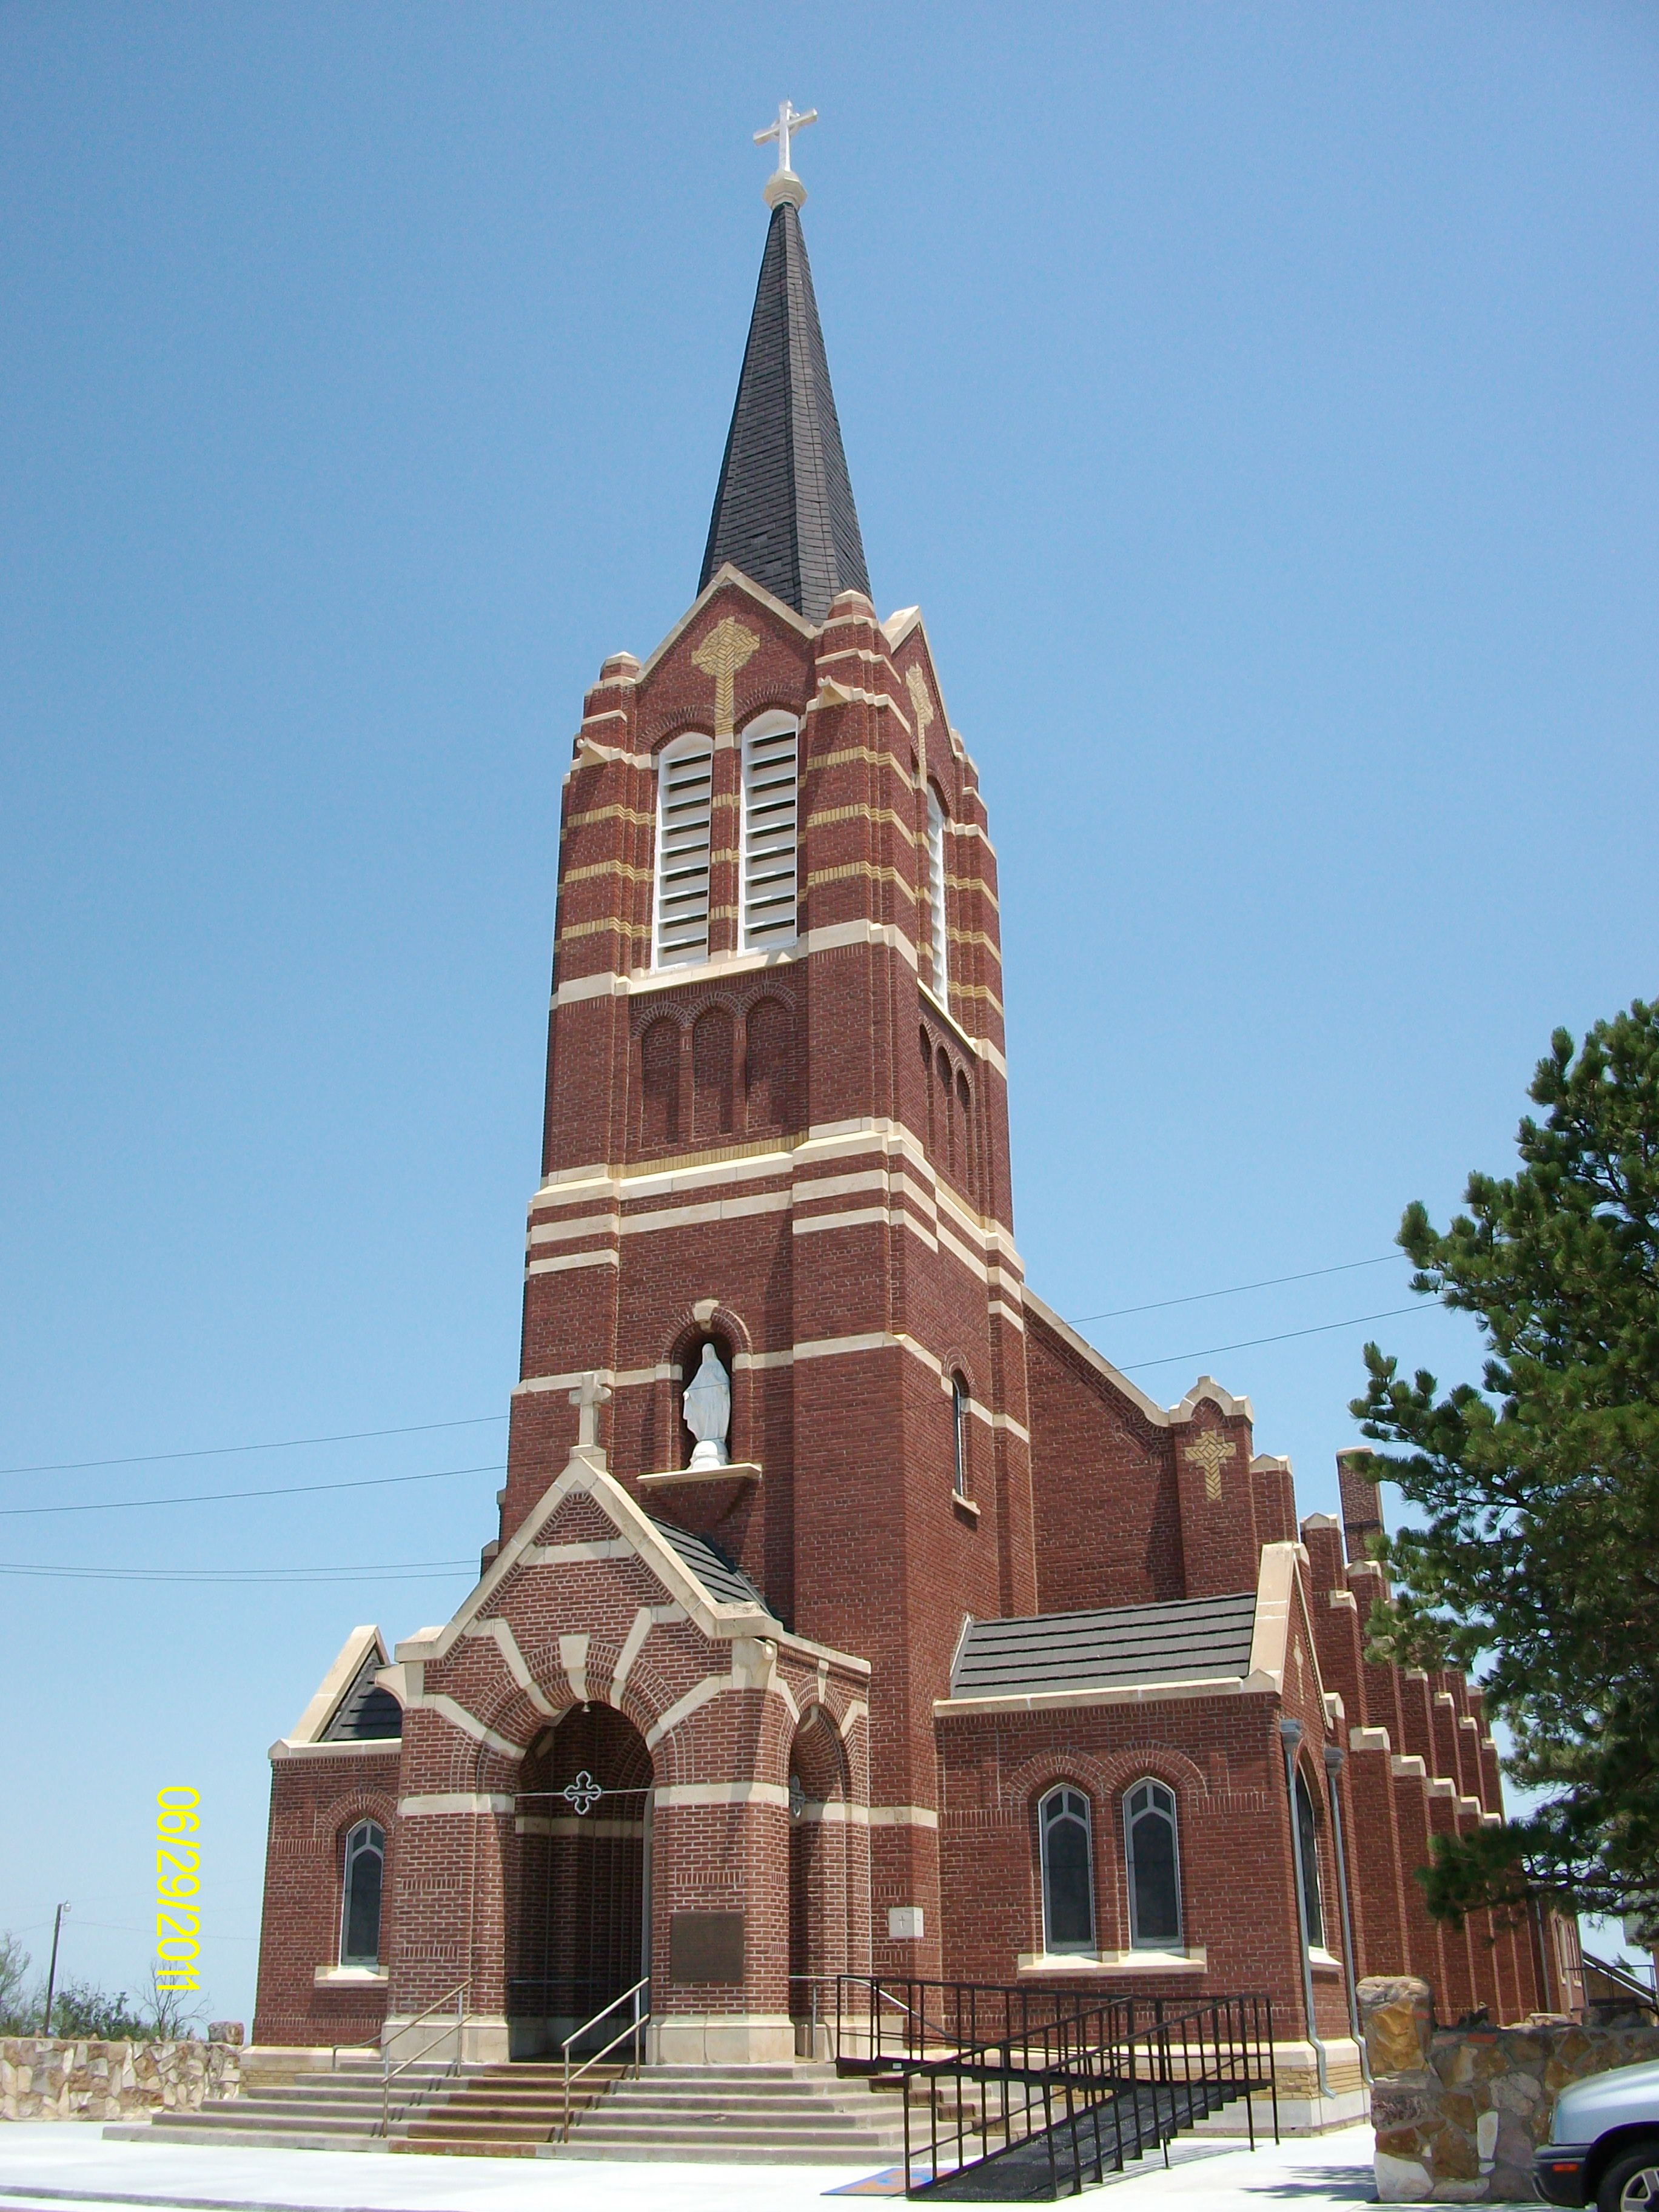 There is a Church out in the middle of the country that is so awesome to visit, the Immaculate Heart of Mary, It is found in Windthorst Kansas. The history behind how the church is built is interesting. The dedication of the church was June 12 1913. the church was closed as an active parish in 1997.